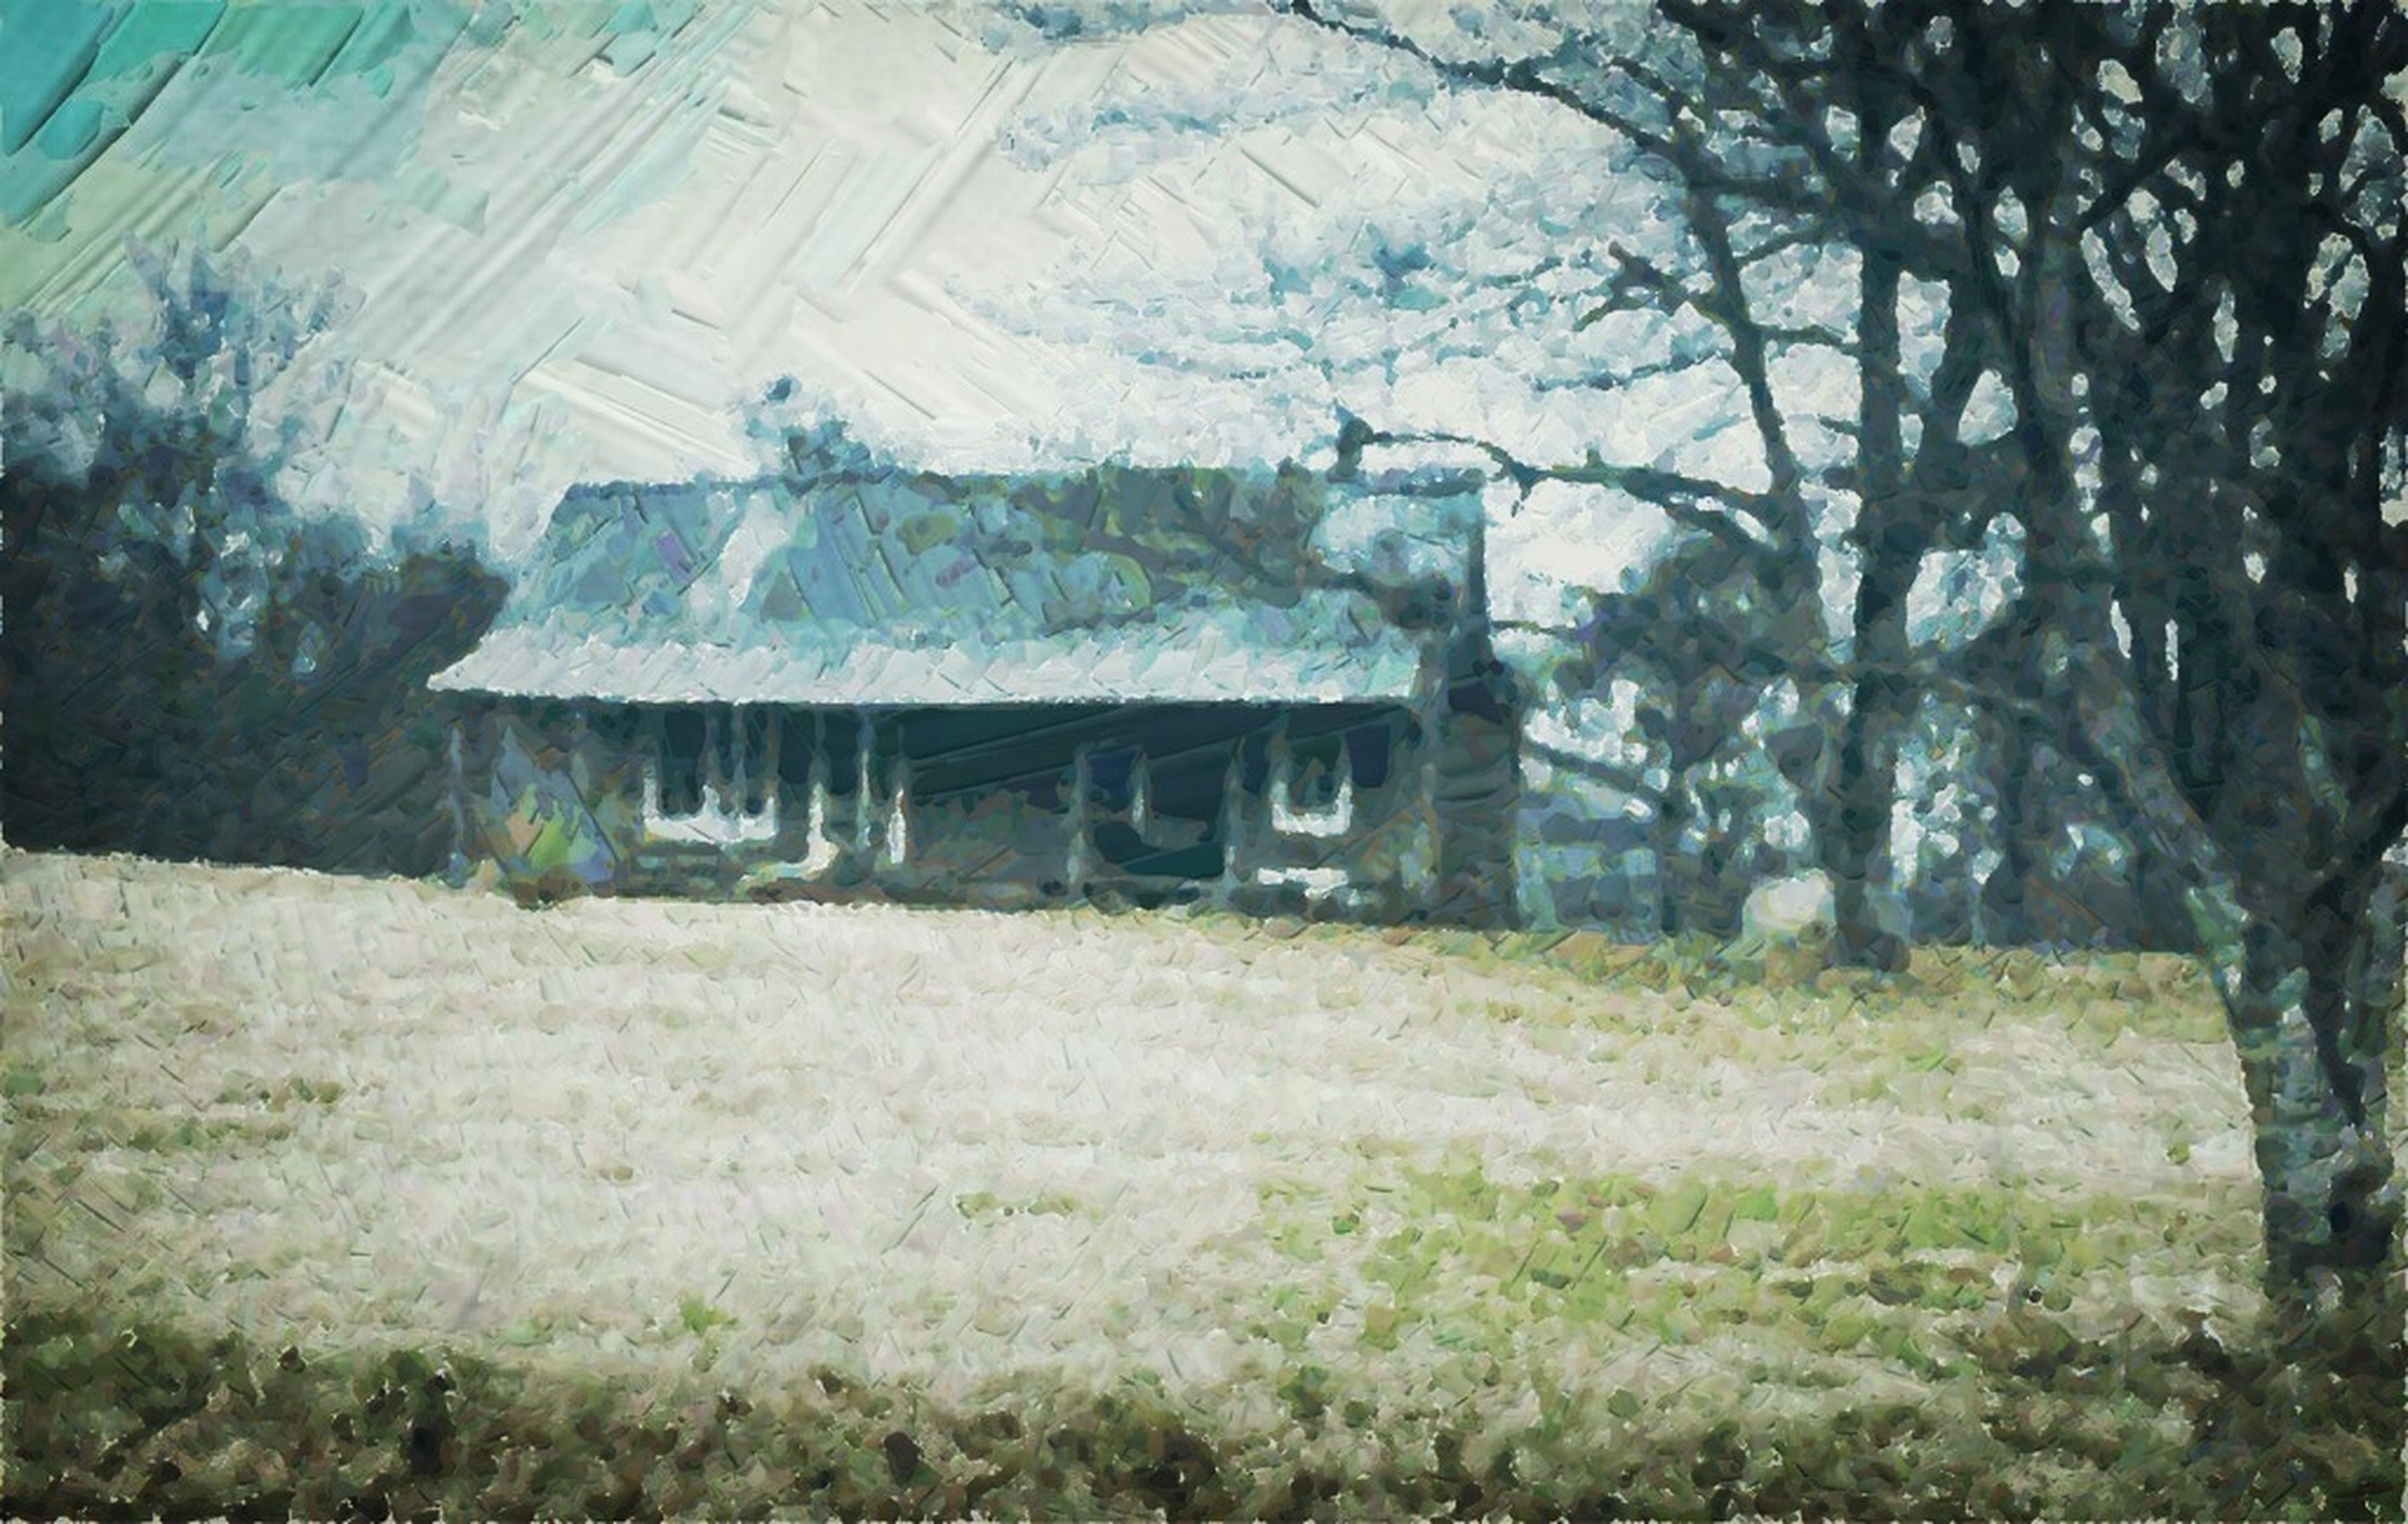 field, tree, grass, growth, abandoned, built structure, nature, tranquility, landscape, architecture, plant, grassy, house, day, tranquil scene, building exterior, no people, rural scene, outdoors, damaged